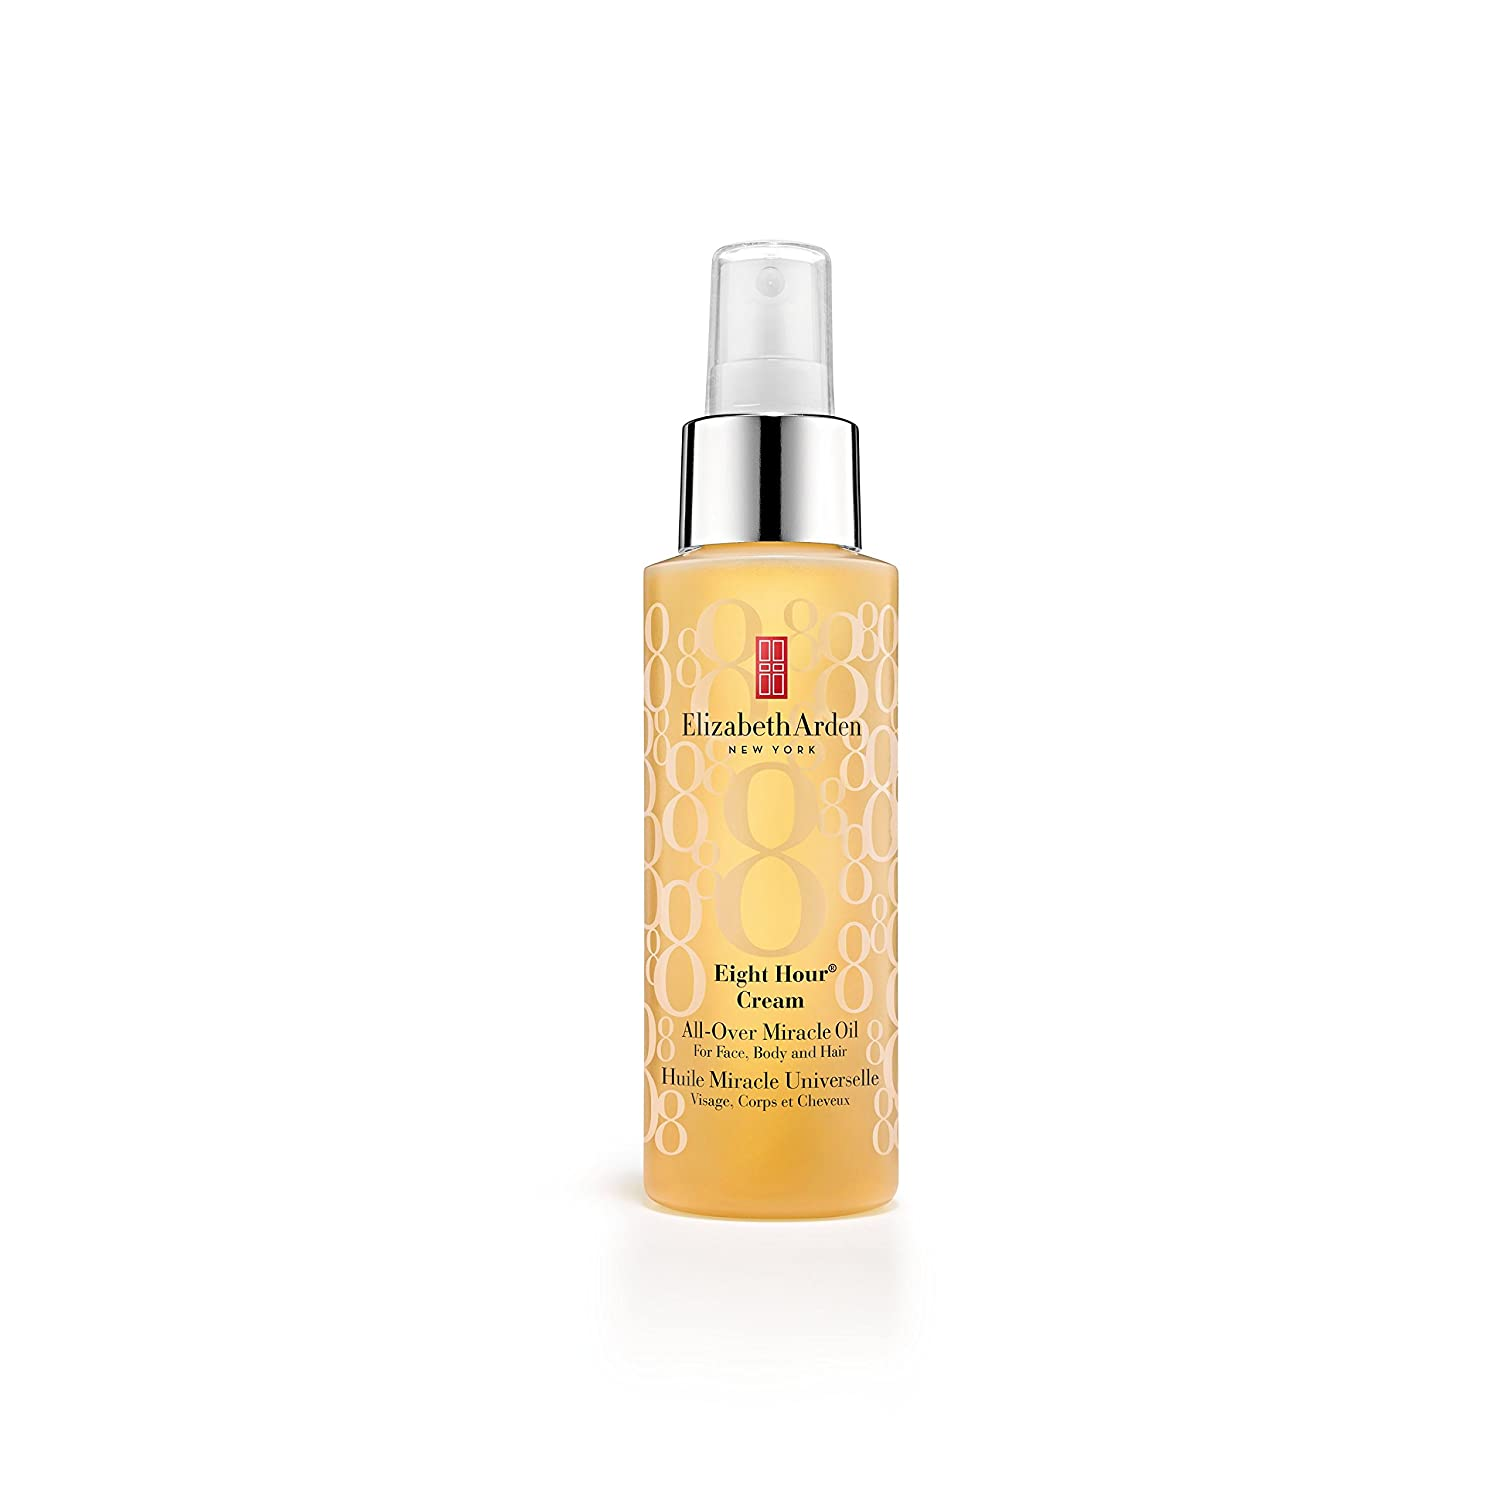 Elizabeth Arden Eight Hour Cream All Over Miracle Oil, 3.4 oz.